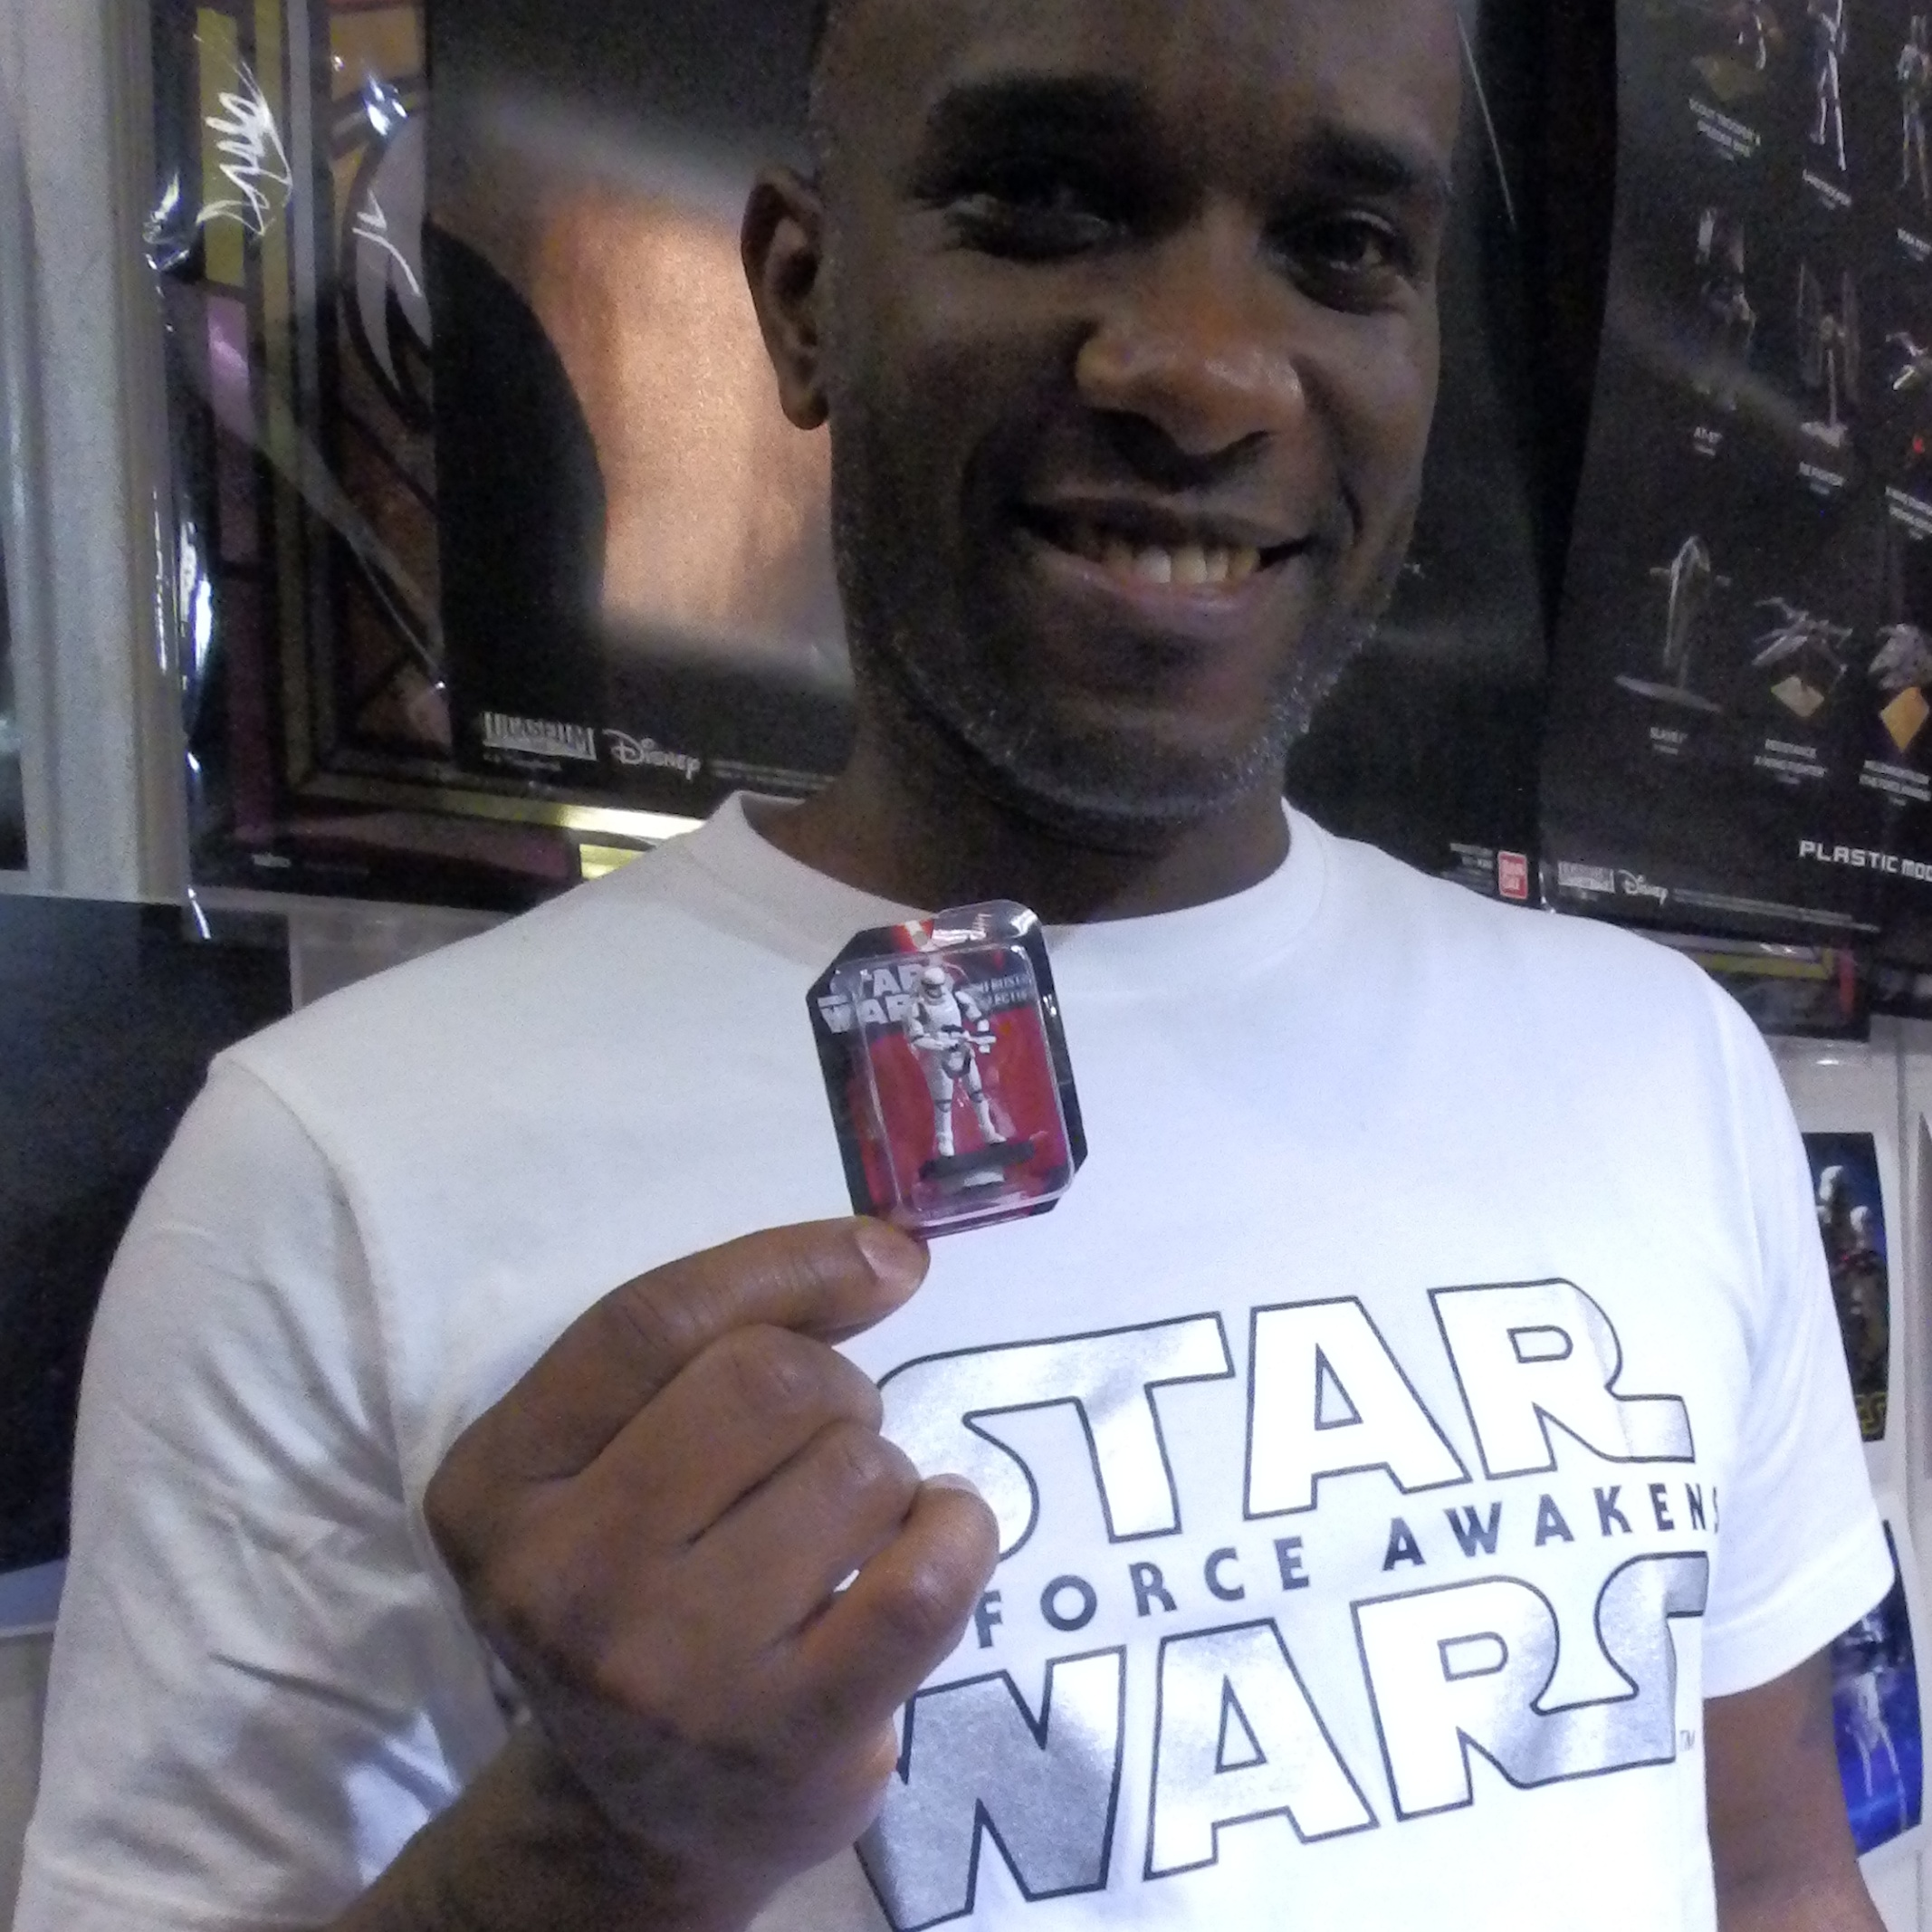 Phoenix James - First Order Stormtrooper Actor - Autograph Signing Tour in Tokyo, Japan 18